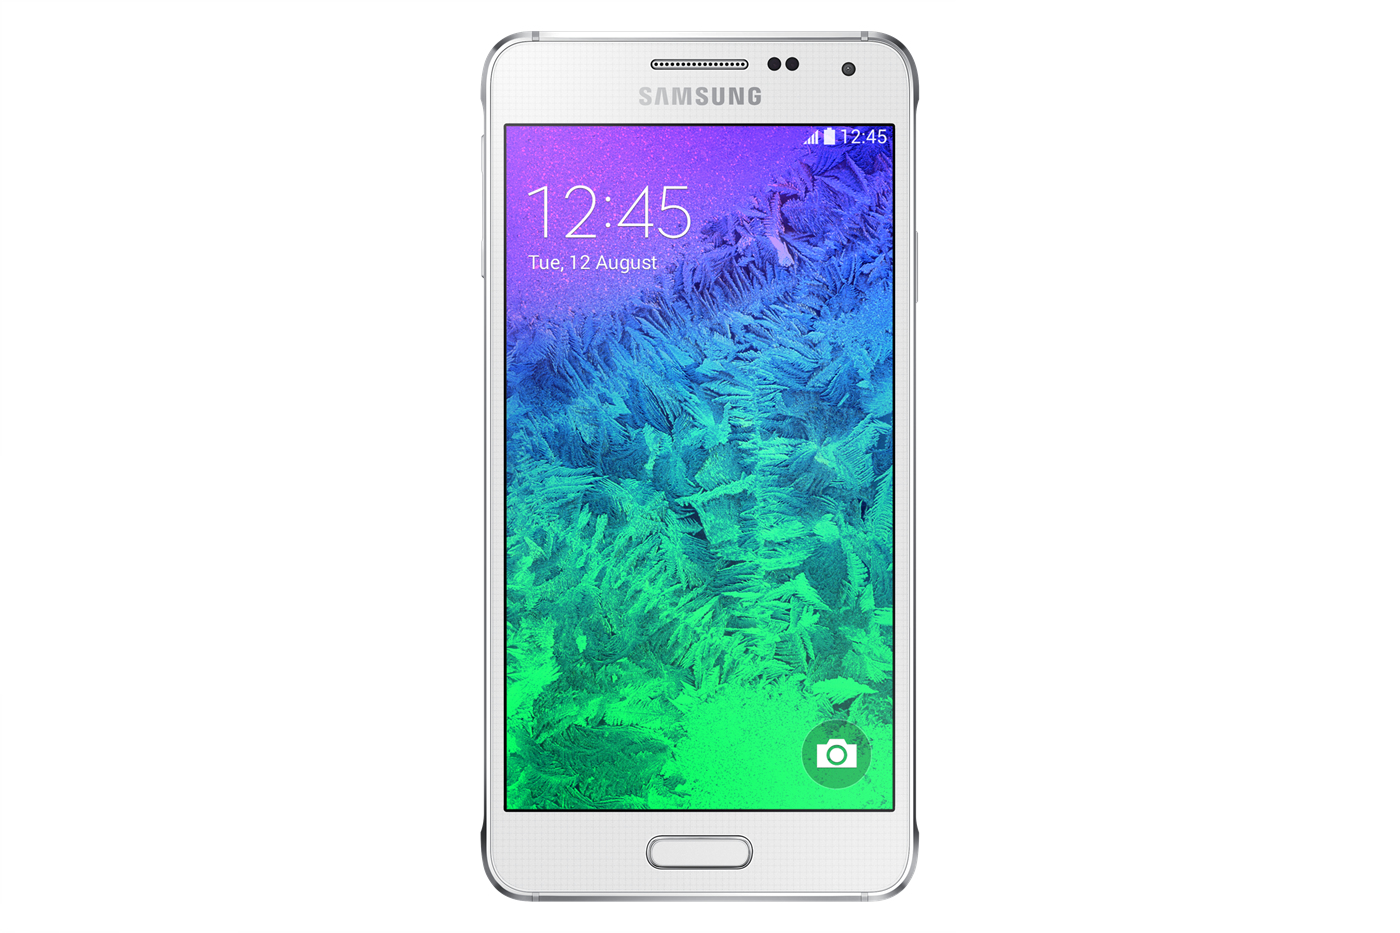 Samsung-Galaxy-Alpha-official-images (8)